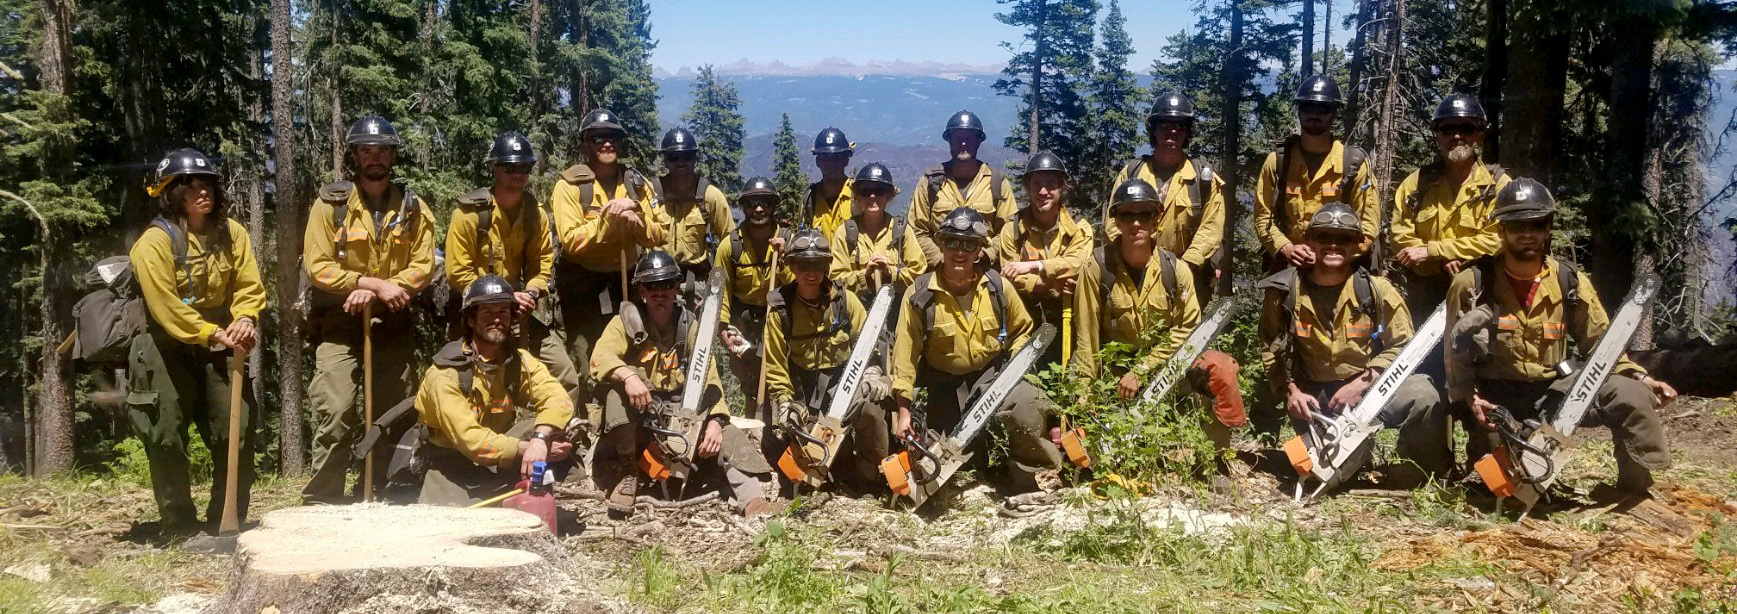 Flagstaff Hotshots Group Photos